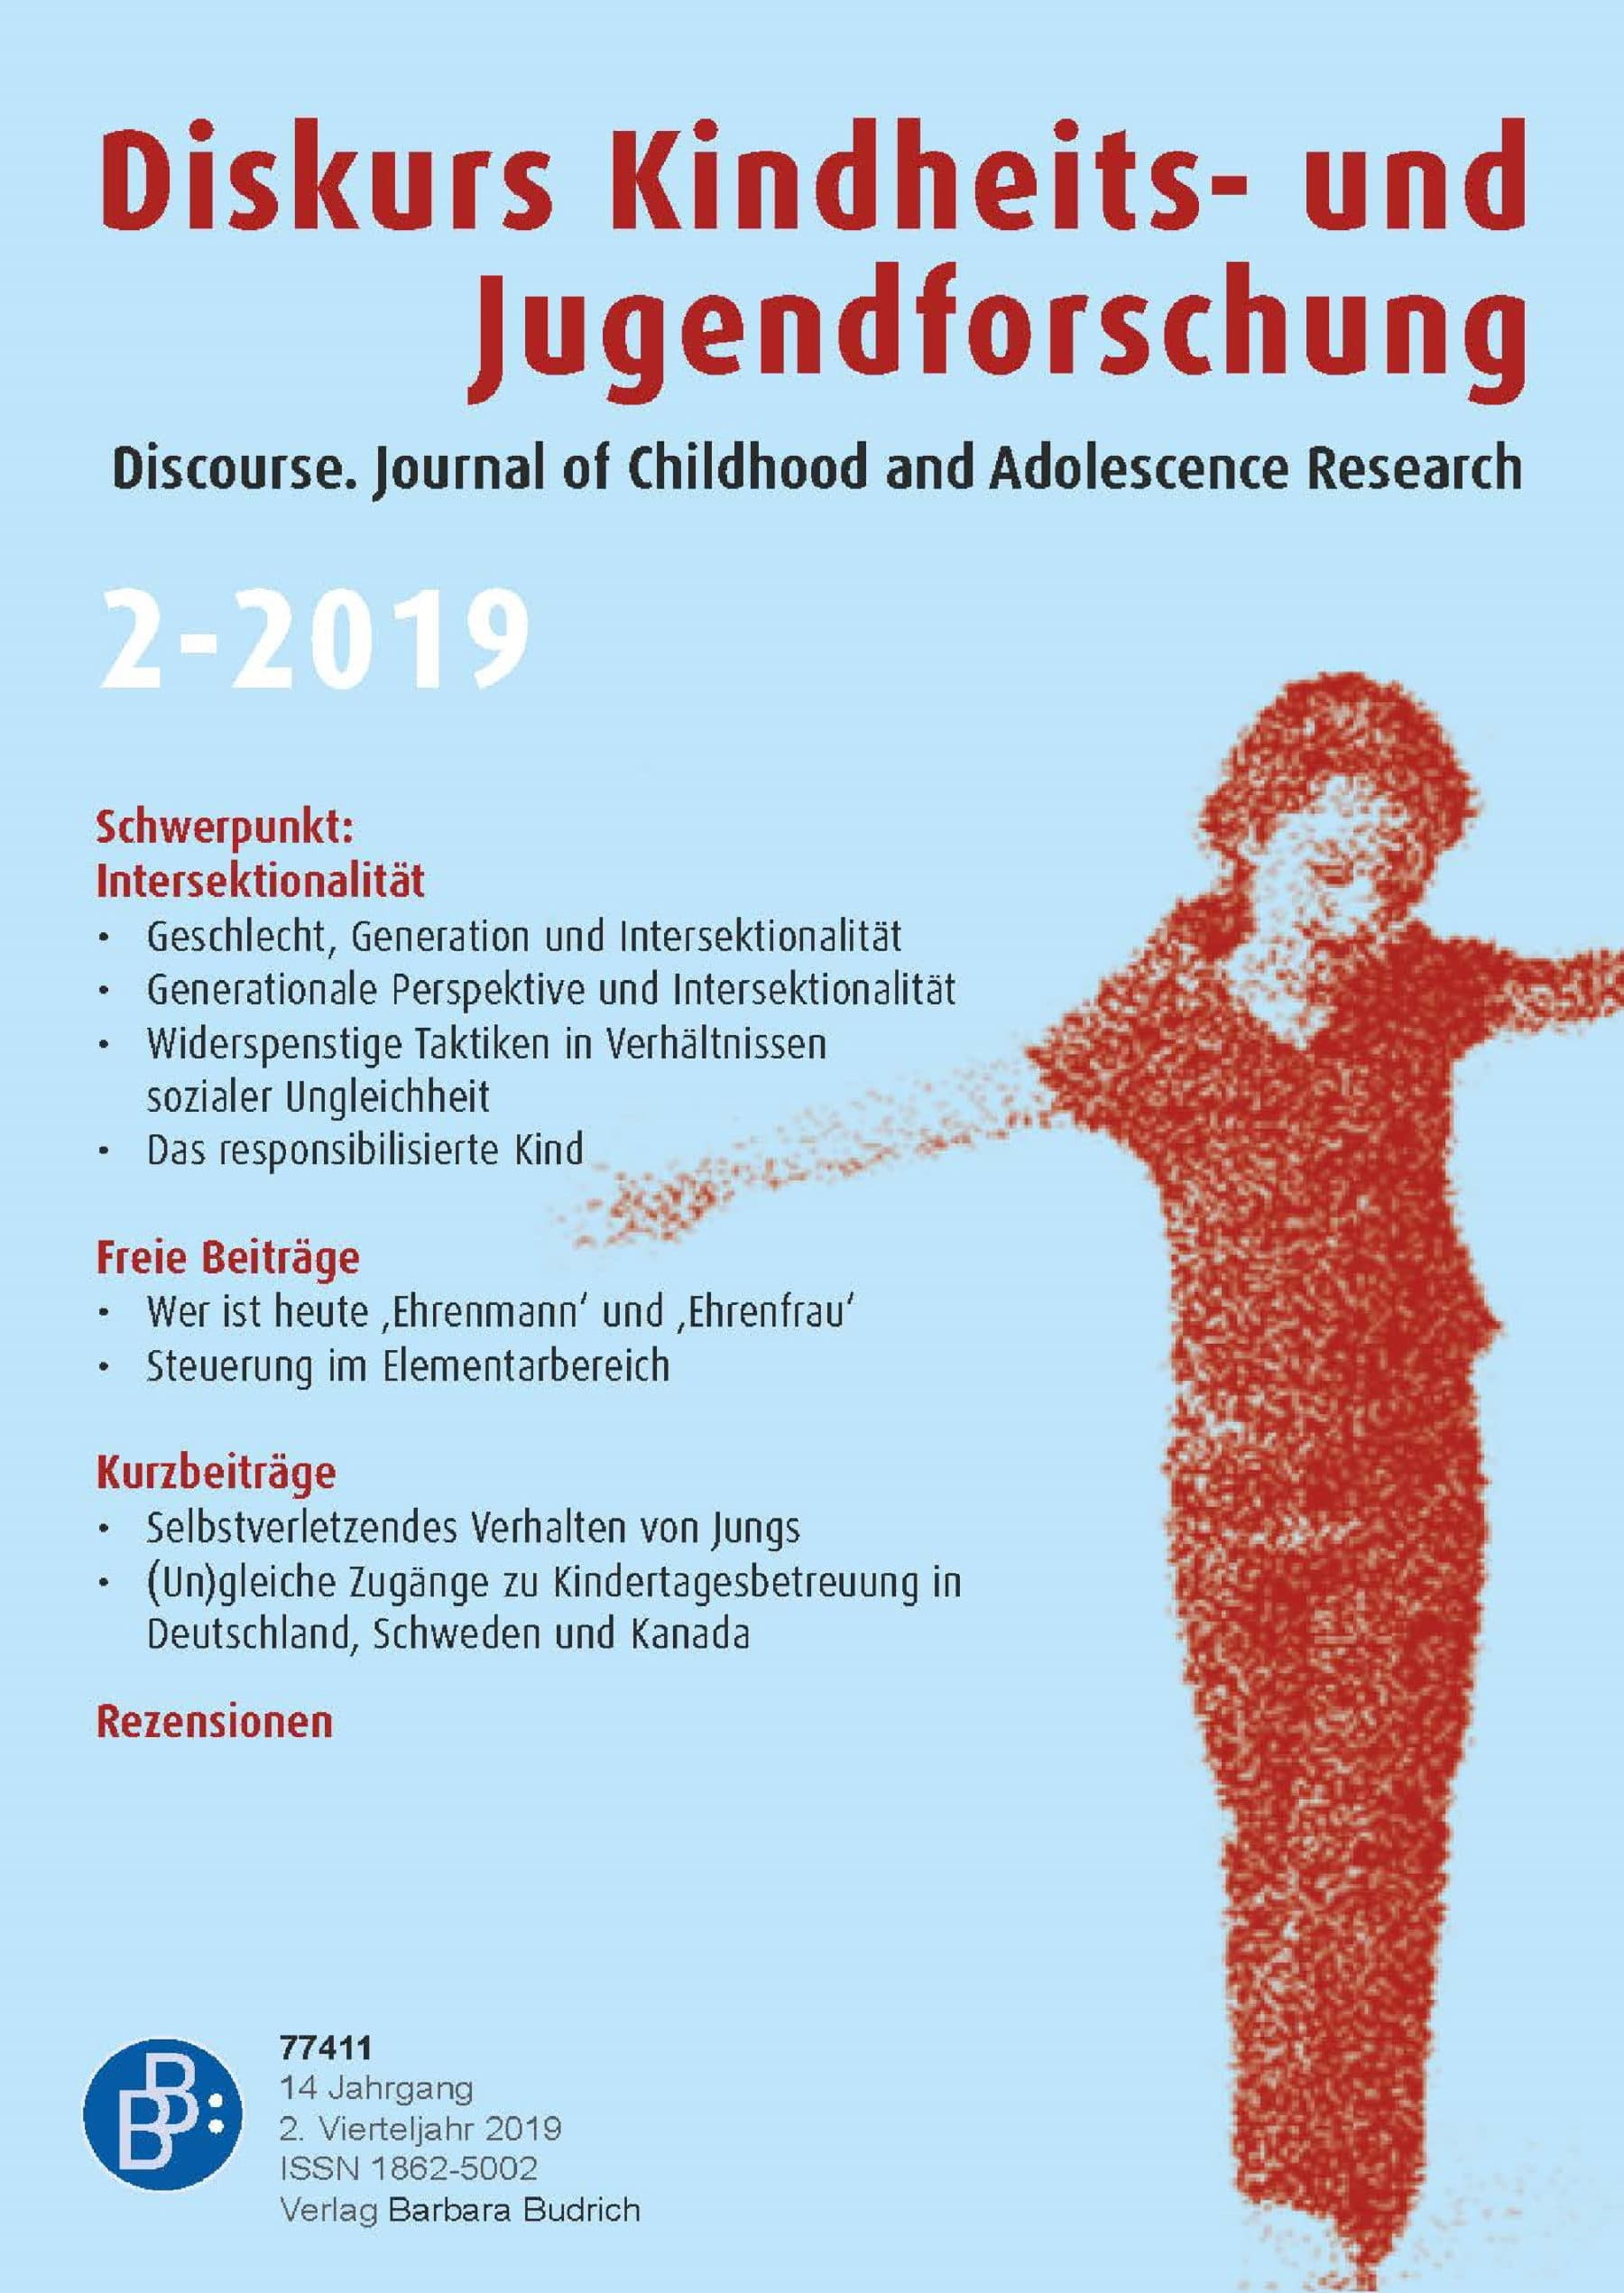 Diskurs Kindheits- und Jugendforschung / Discourse. Journal of Childhood and Adolescence Research 2-2019